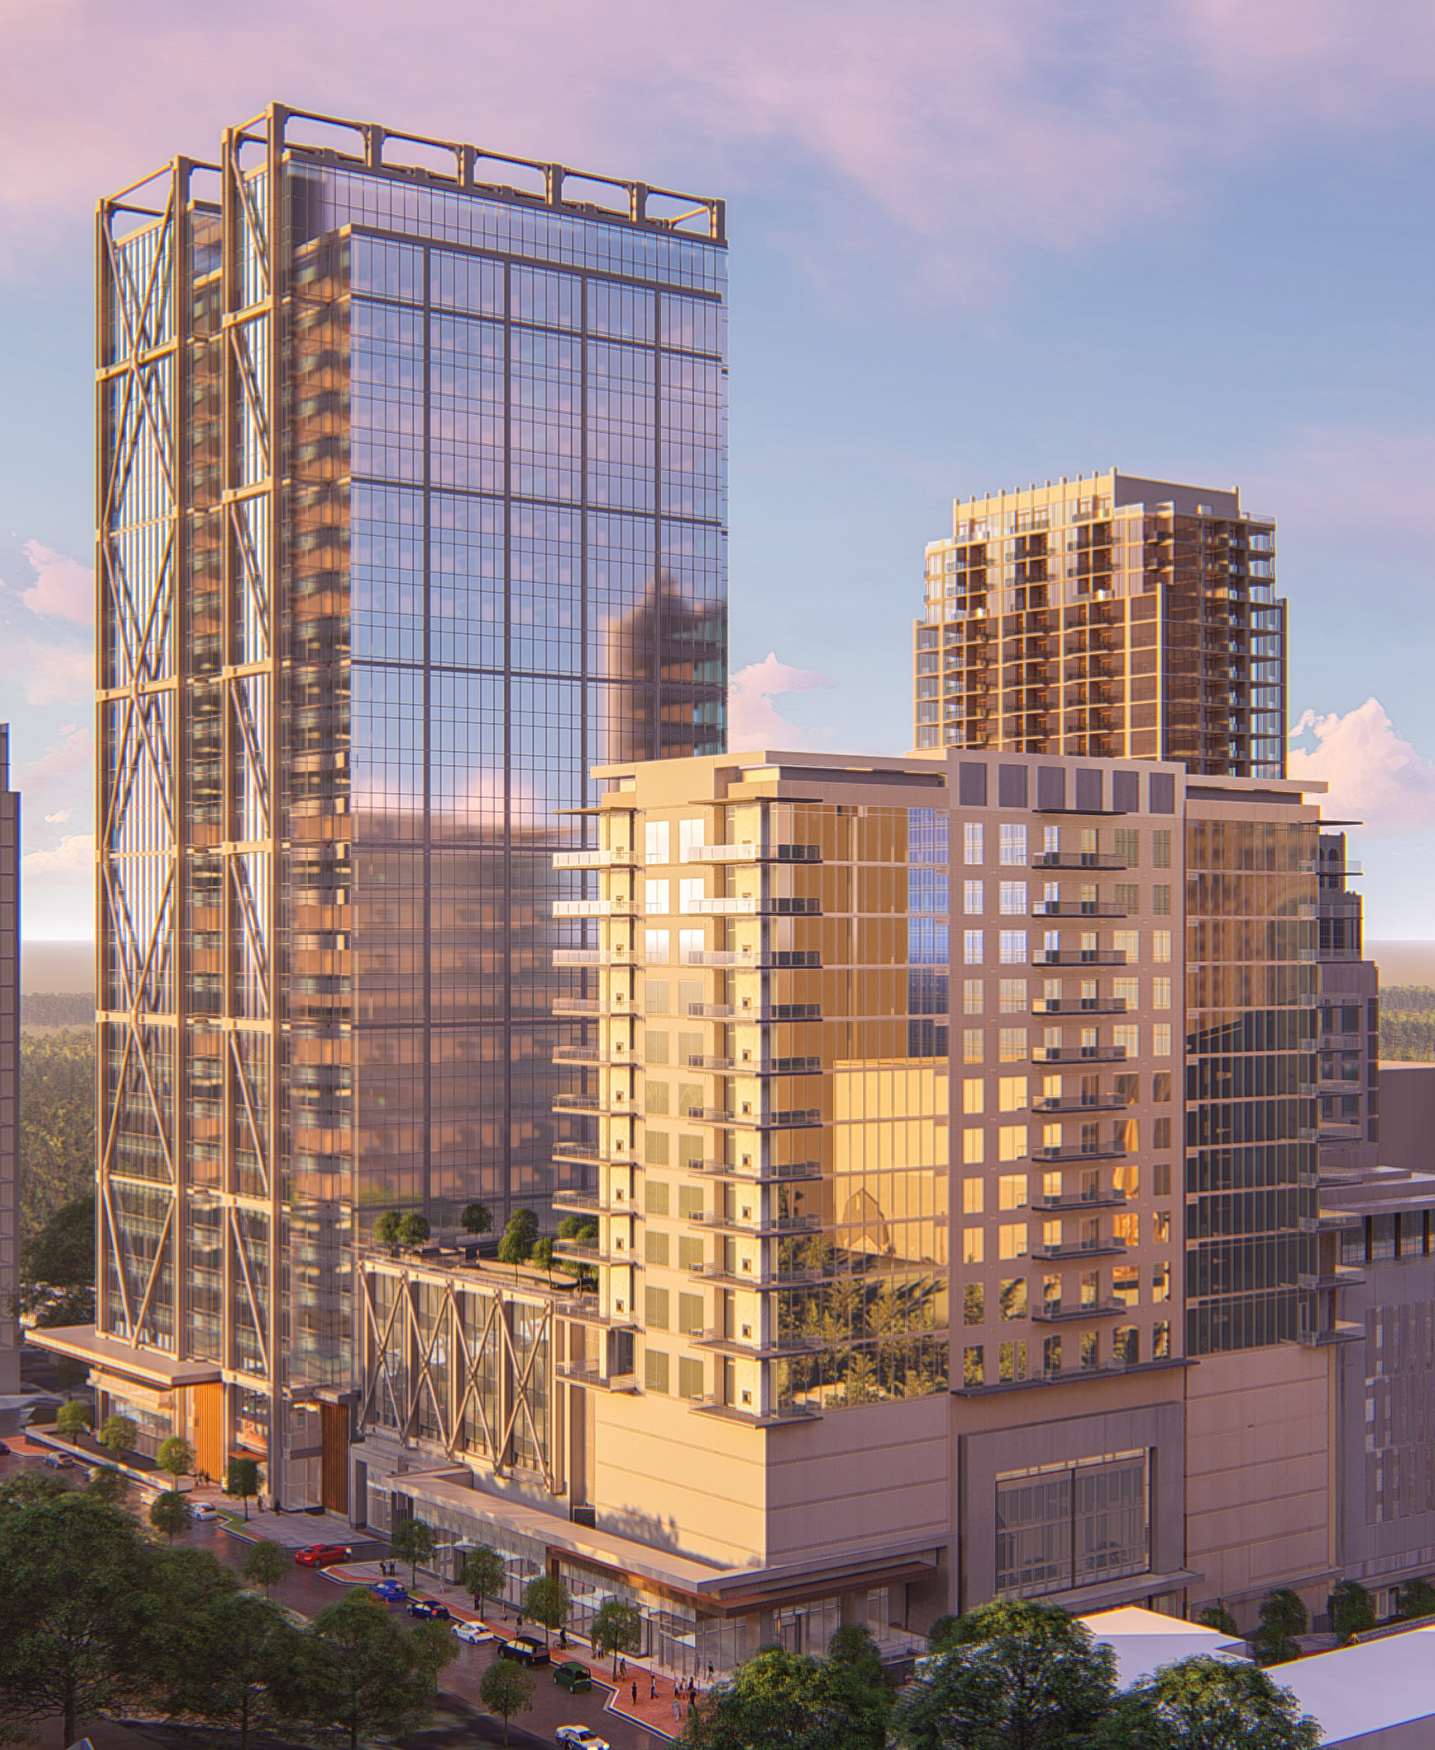 a rendering of 1105 west peachtree